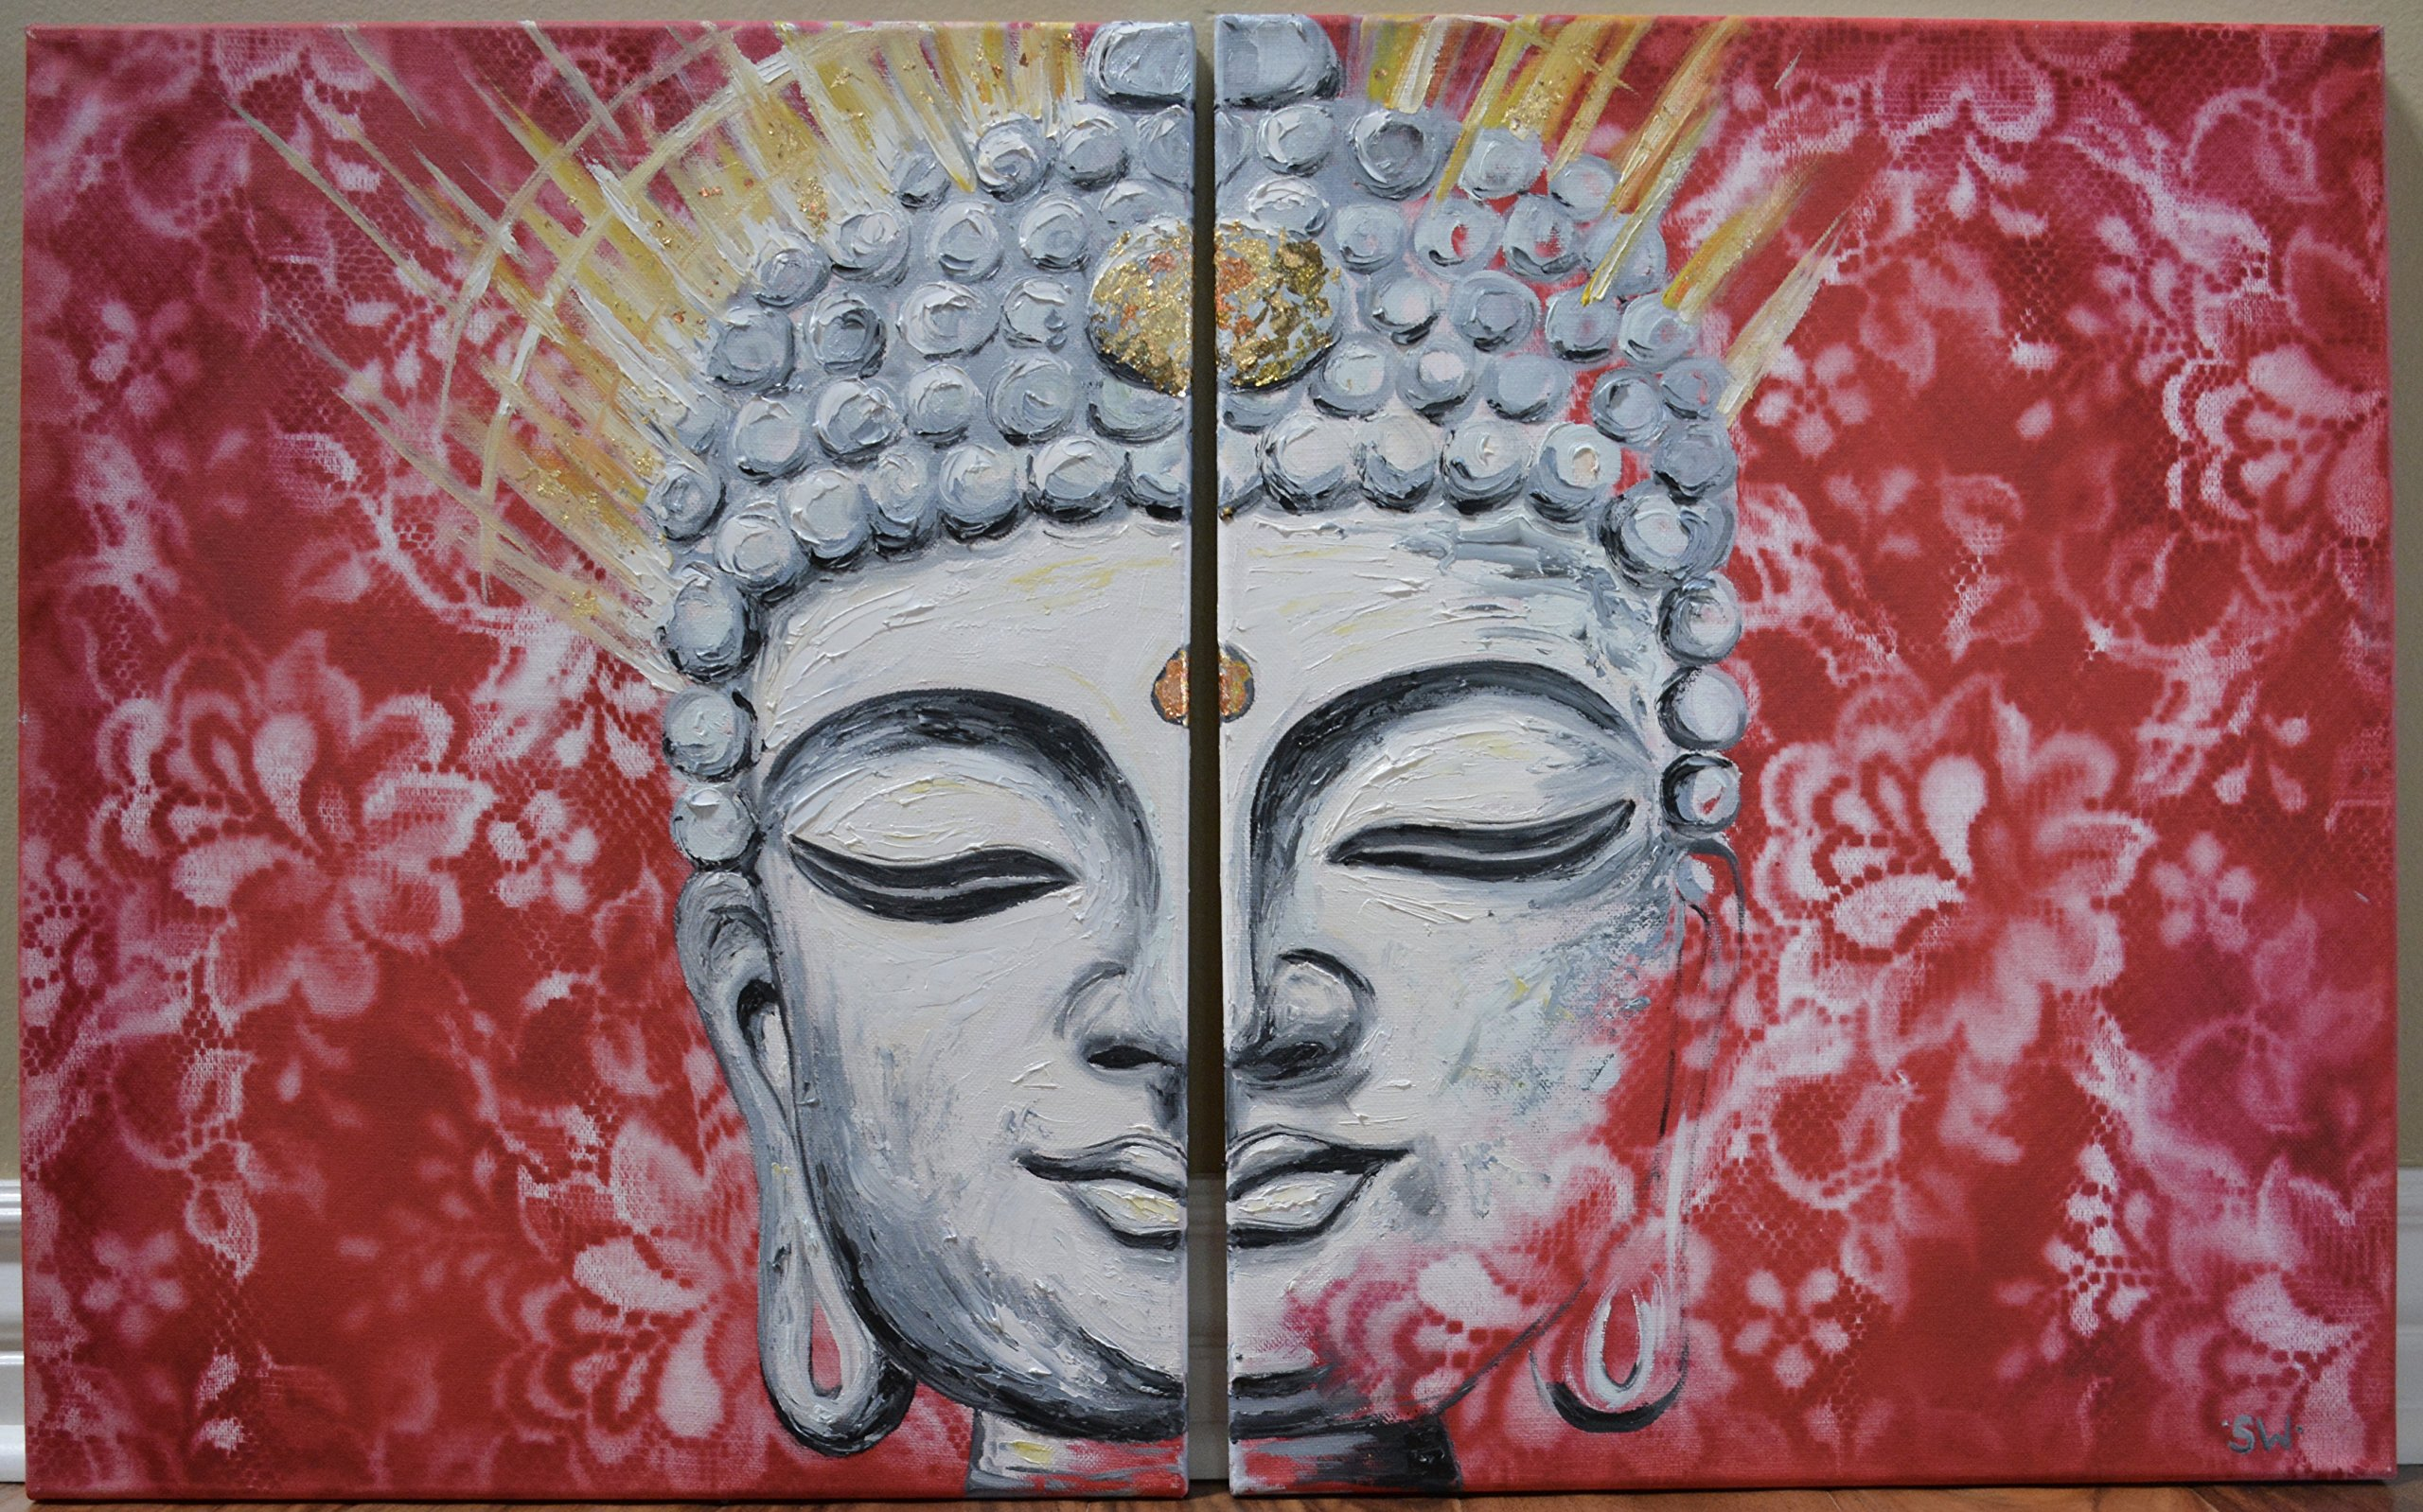 Enlightenment Stone Buddha with red lace Original Oil Painting, Buddha face, gold, spiritual, zen, fengshui by Sheri Wiseman Art